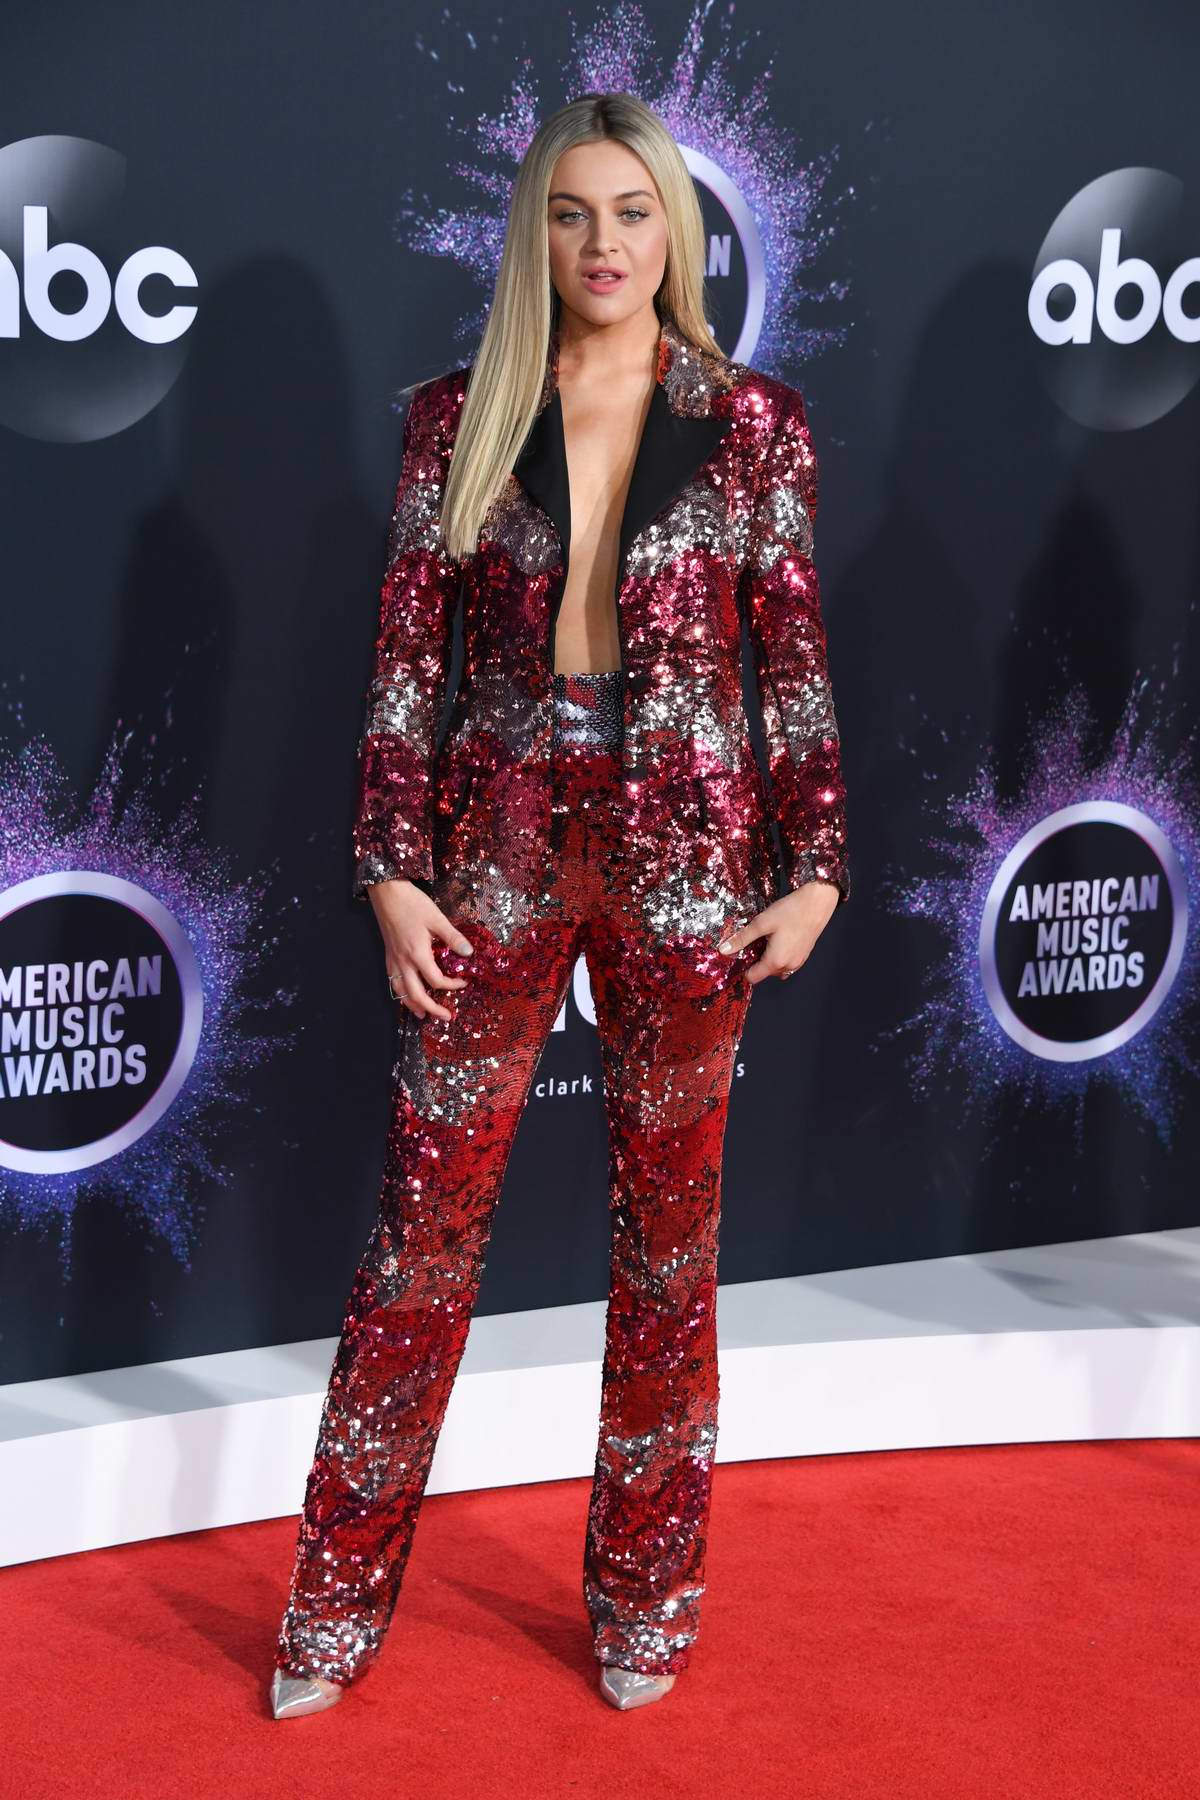 Kelsea Ballerini attends the 2019 American Music Awards at Microsoft Theater in Los Angeles